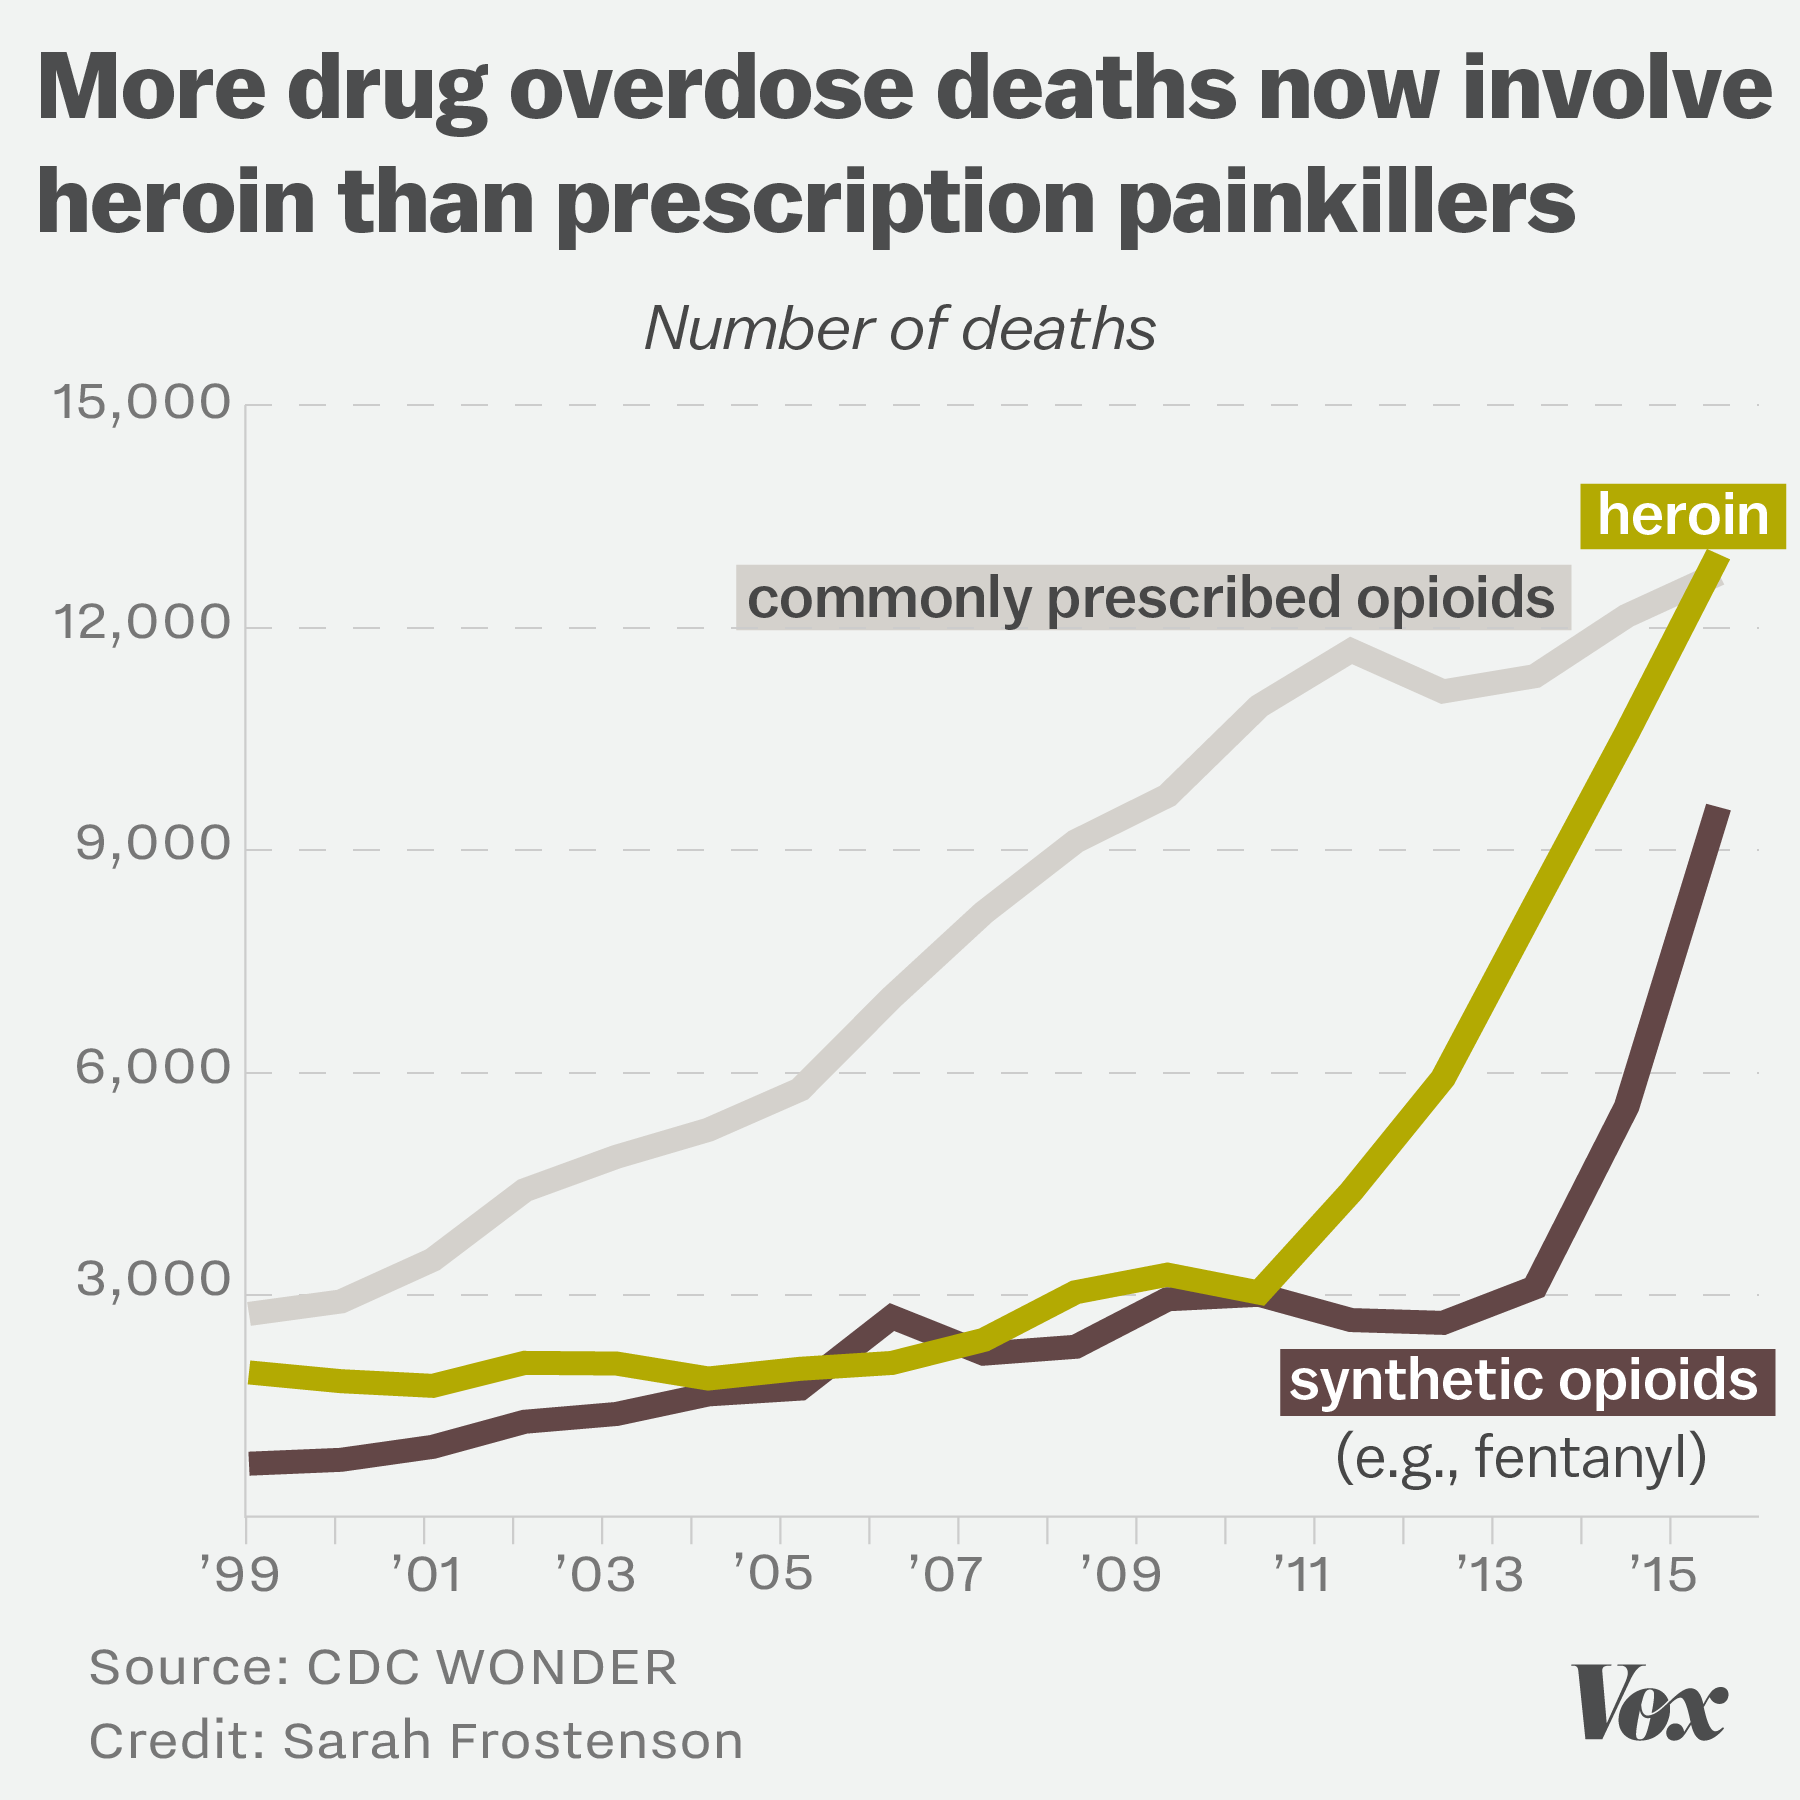 Opioid overdoses are climbing. But prescription painkillers aren't driving them anymore.